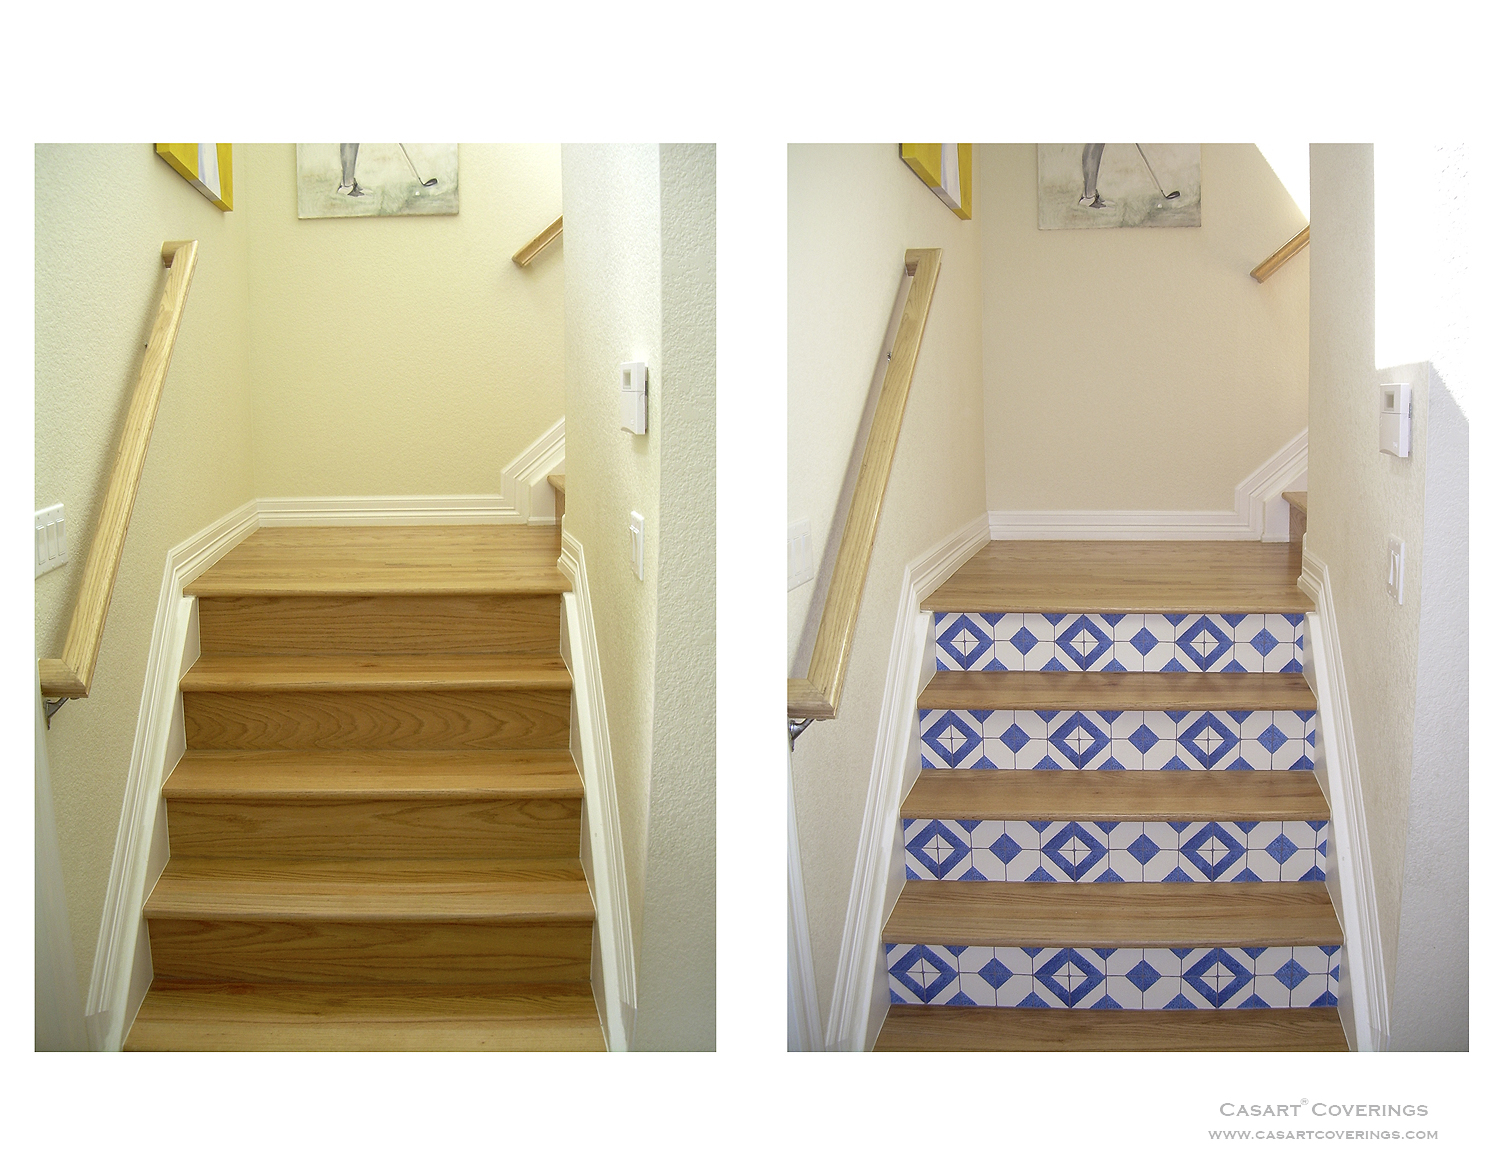 Casart_Faux-Tile-Stair-Risers_wm